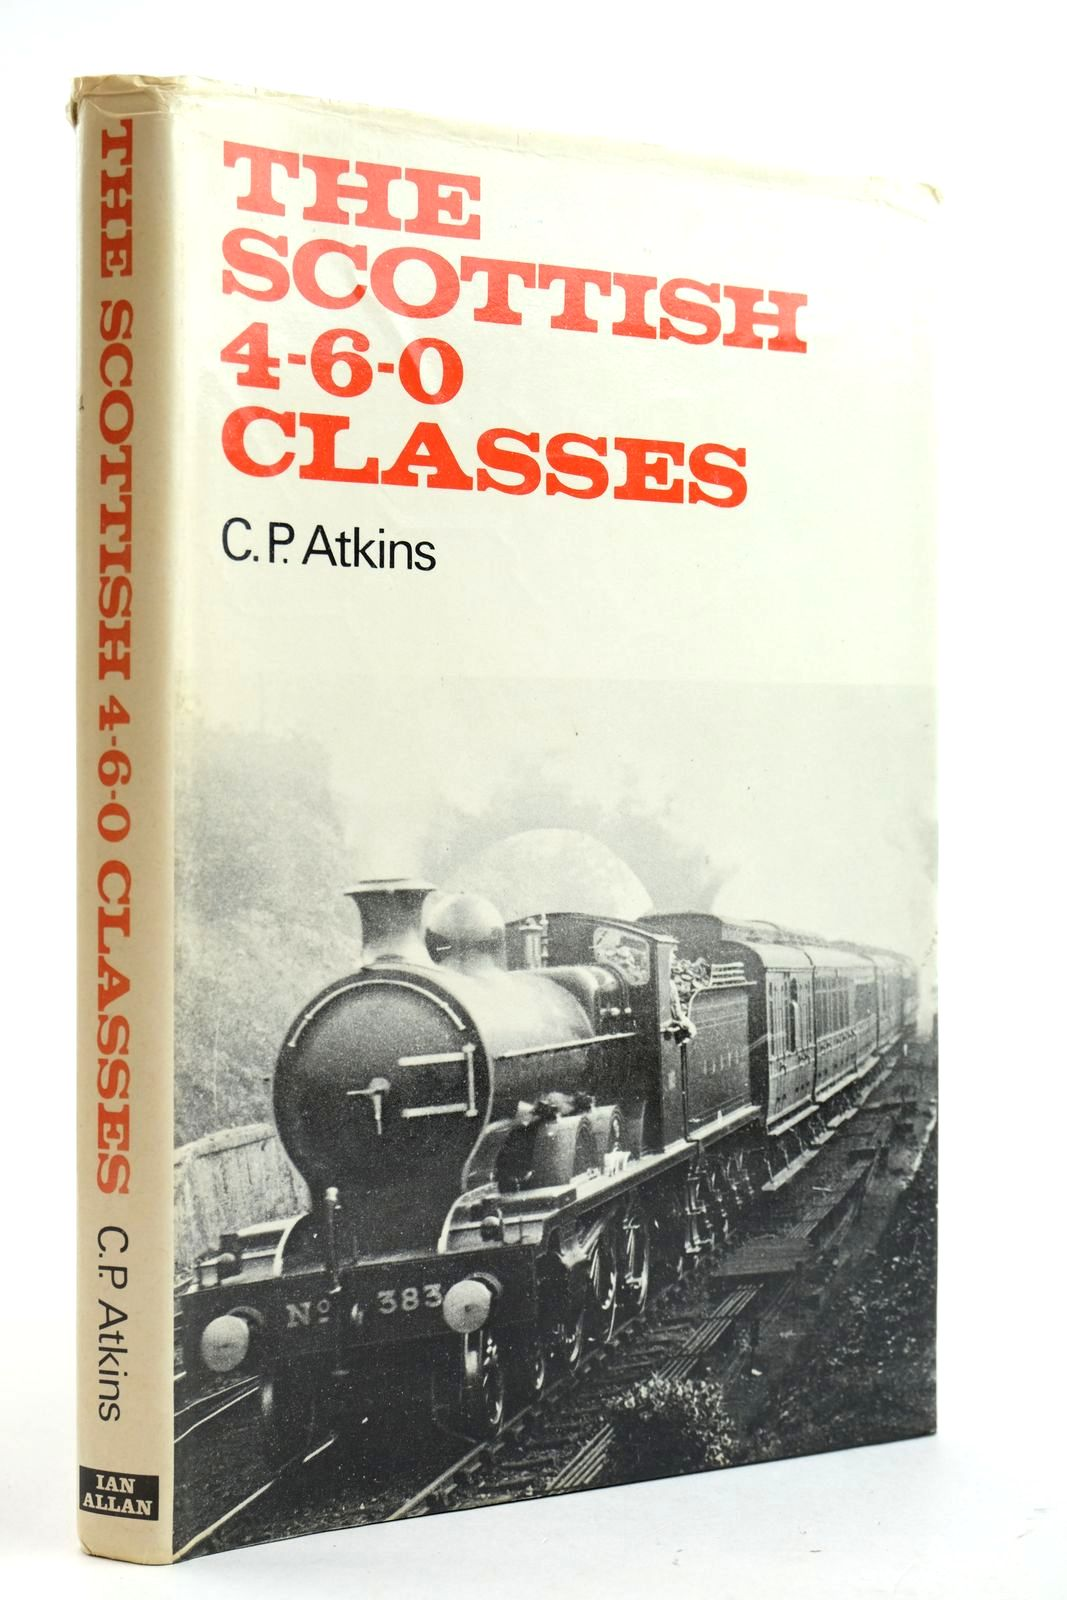 Photo of THE SCOTTISH 4-6-0 CLASSES written by Atkins, C.P. published by Ian Allan Ltd. (STOCK CODE: 2133004)  for sale by Stella & Rose's Books